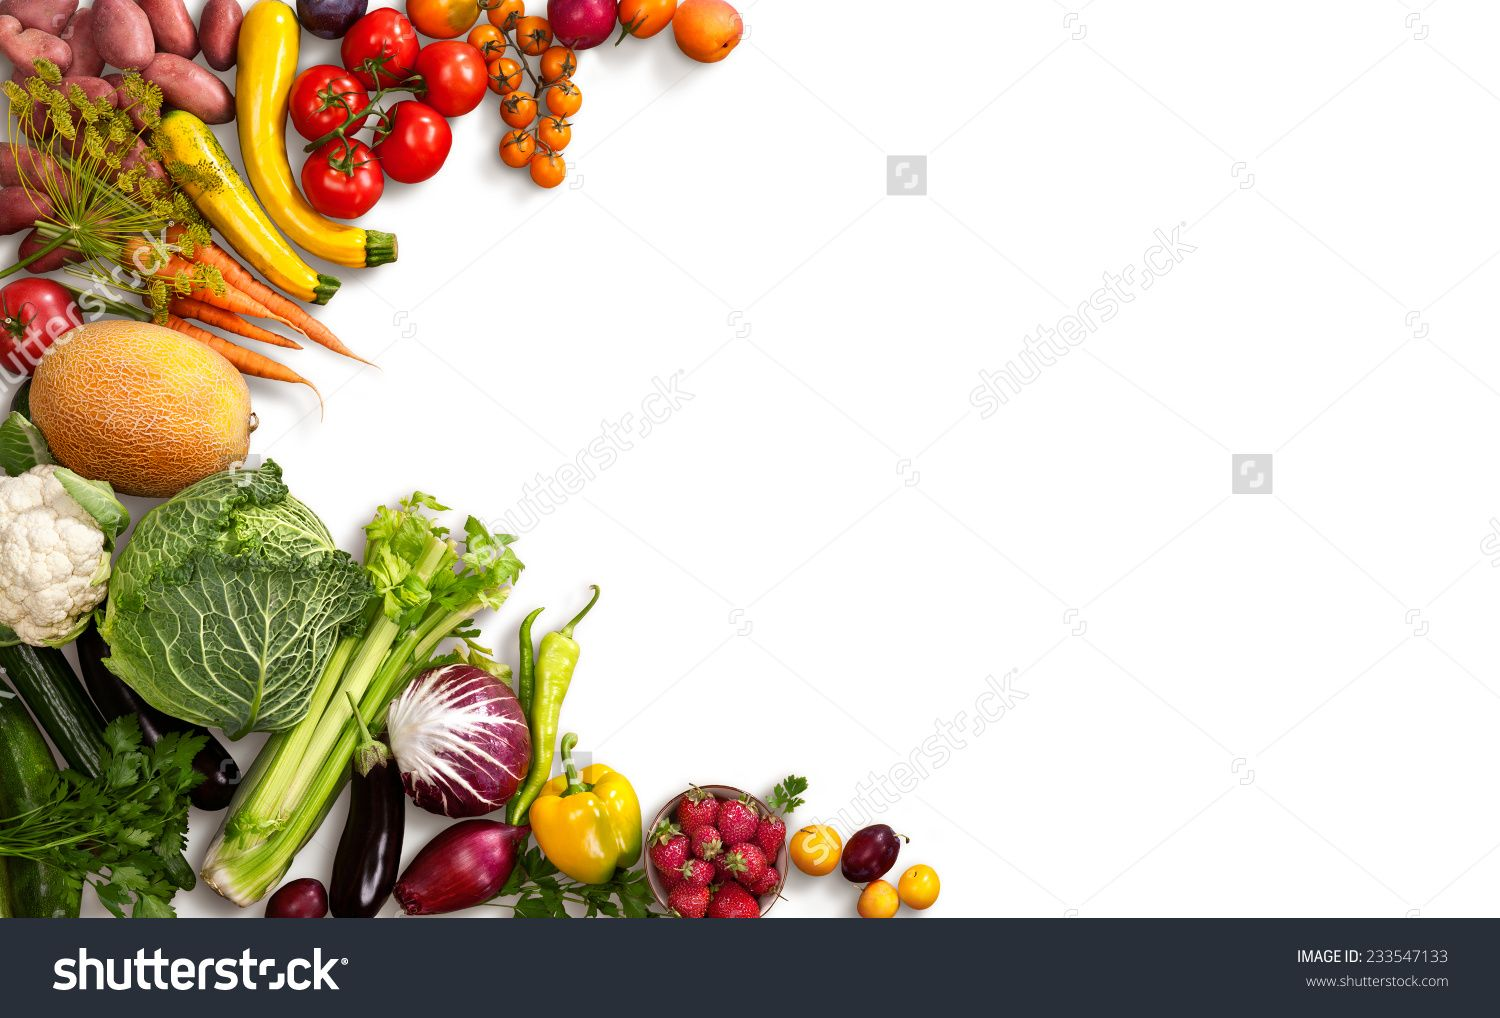 Pictures of Different Healthy Foods | Healthy Food ...